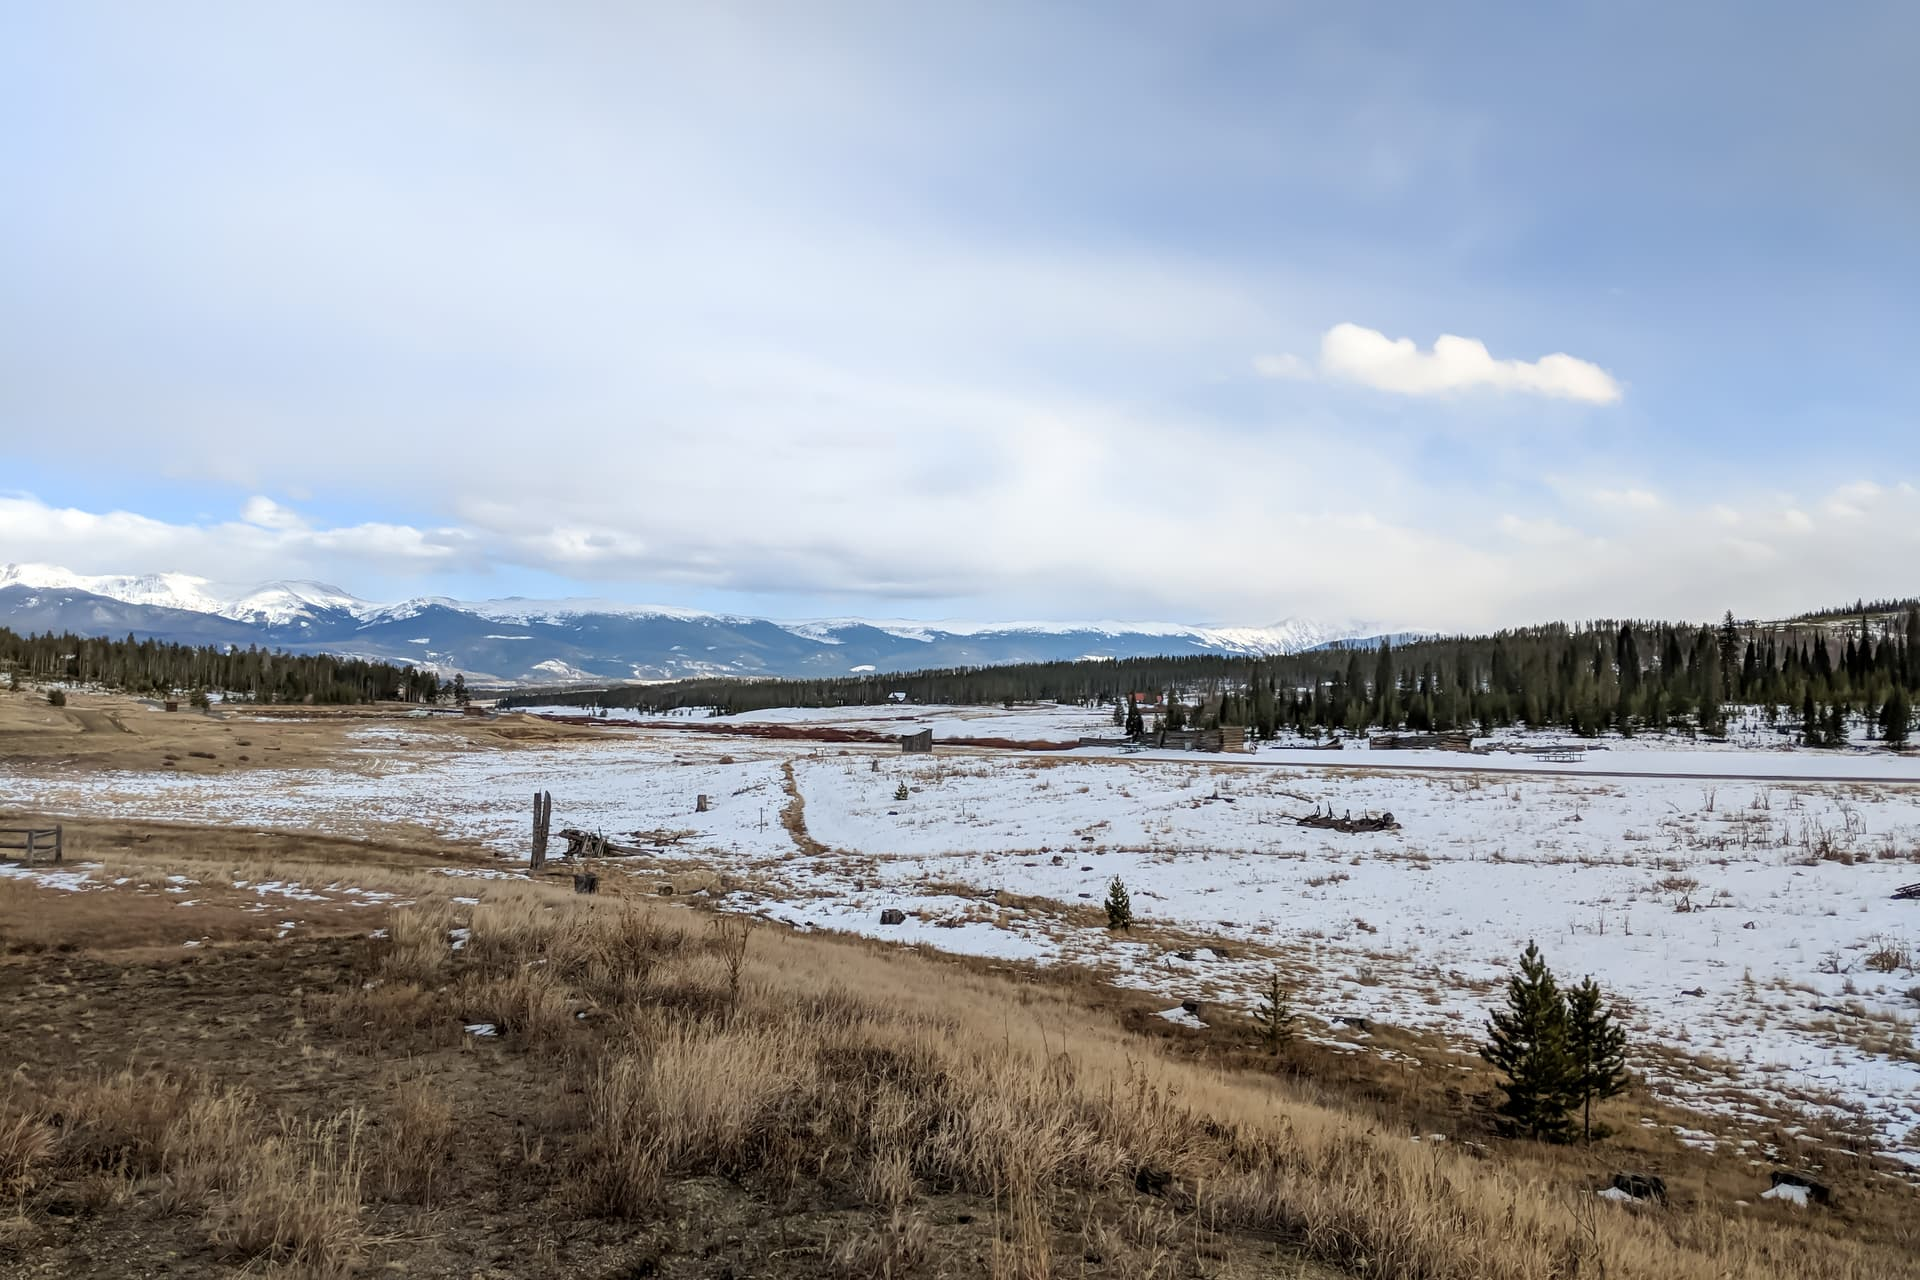 Looking out across a snowy high country ranch. In the distance, the Rocky Mountains.